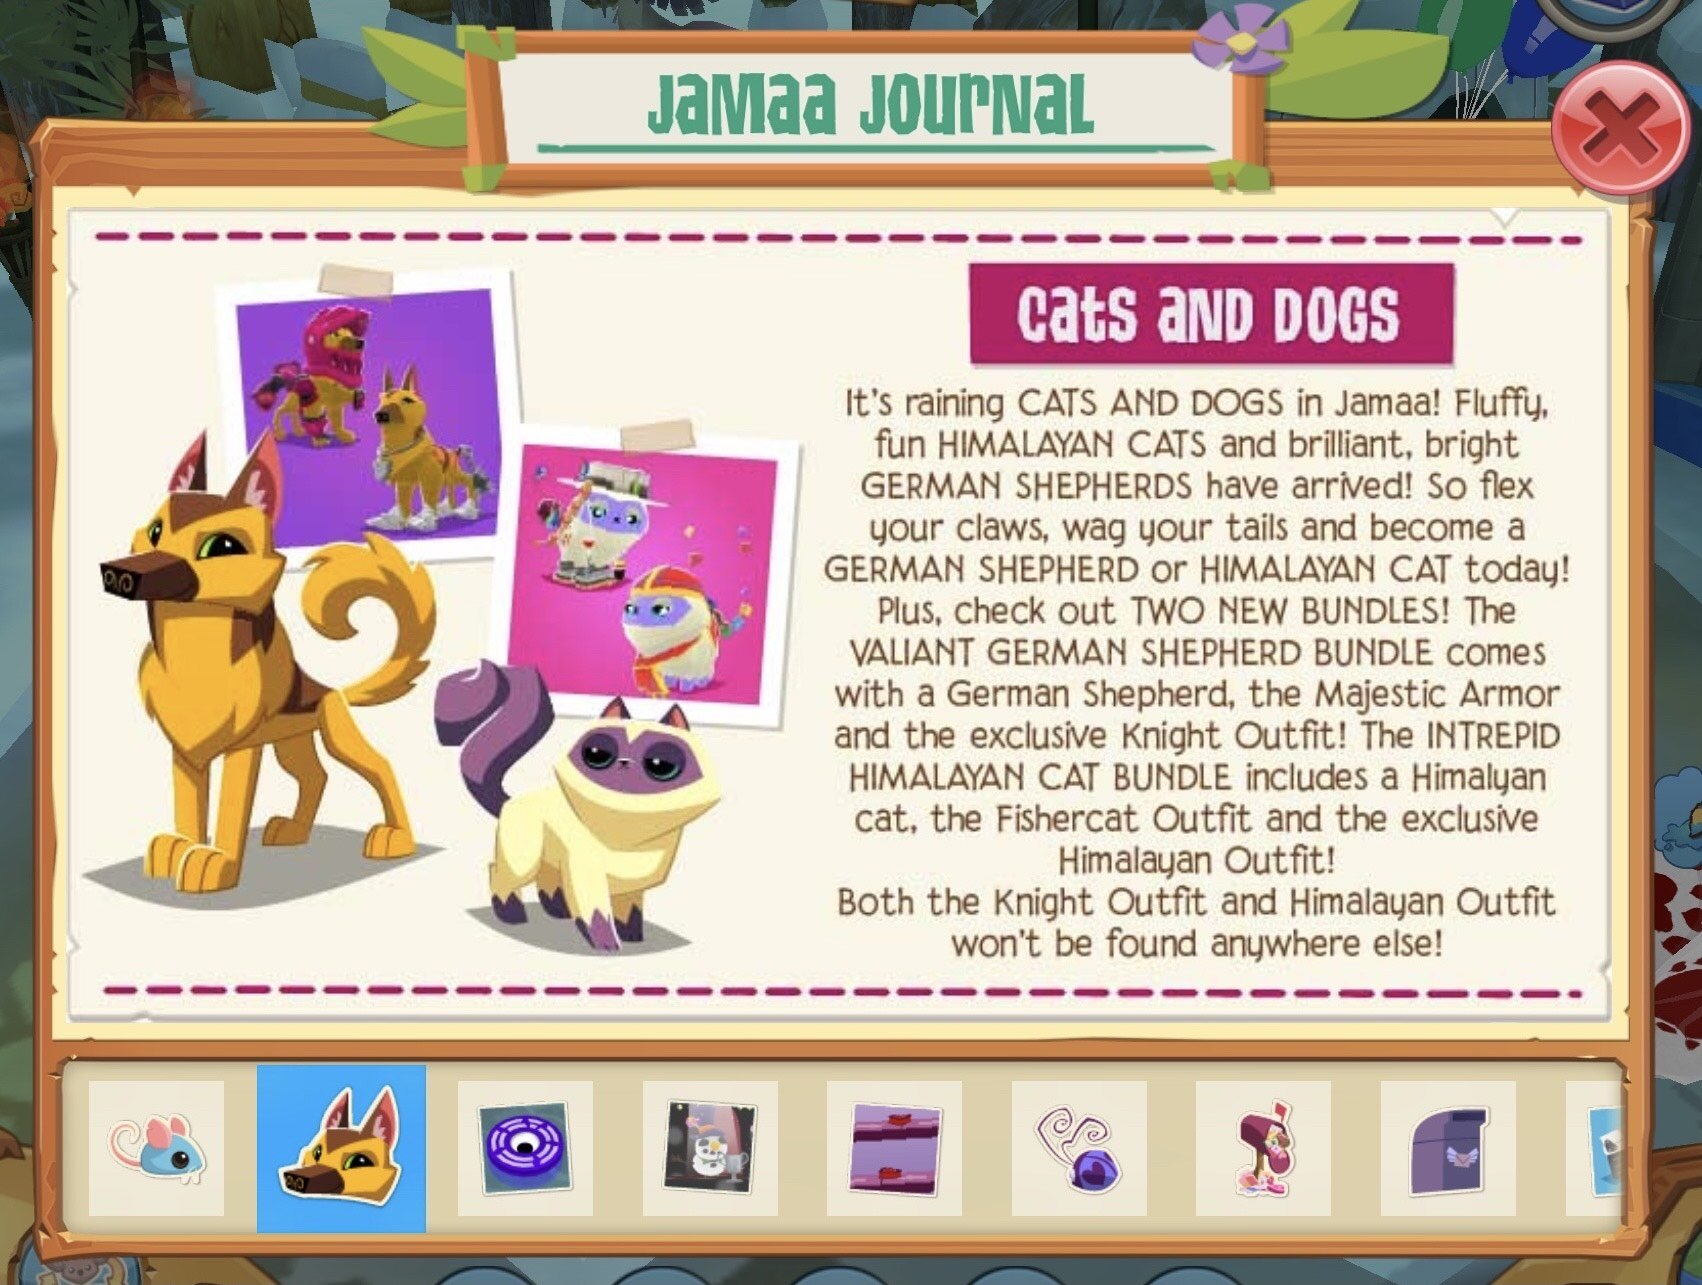 It S Raining Cat S And Dogs On Aj Pw Animal Jam Archives Currently thinking about what it trade this kid, i decided for some pets since it is a new feature though it is pretty buggy i've noticed haha. dogs on aj pw animal jam archives